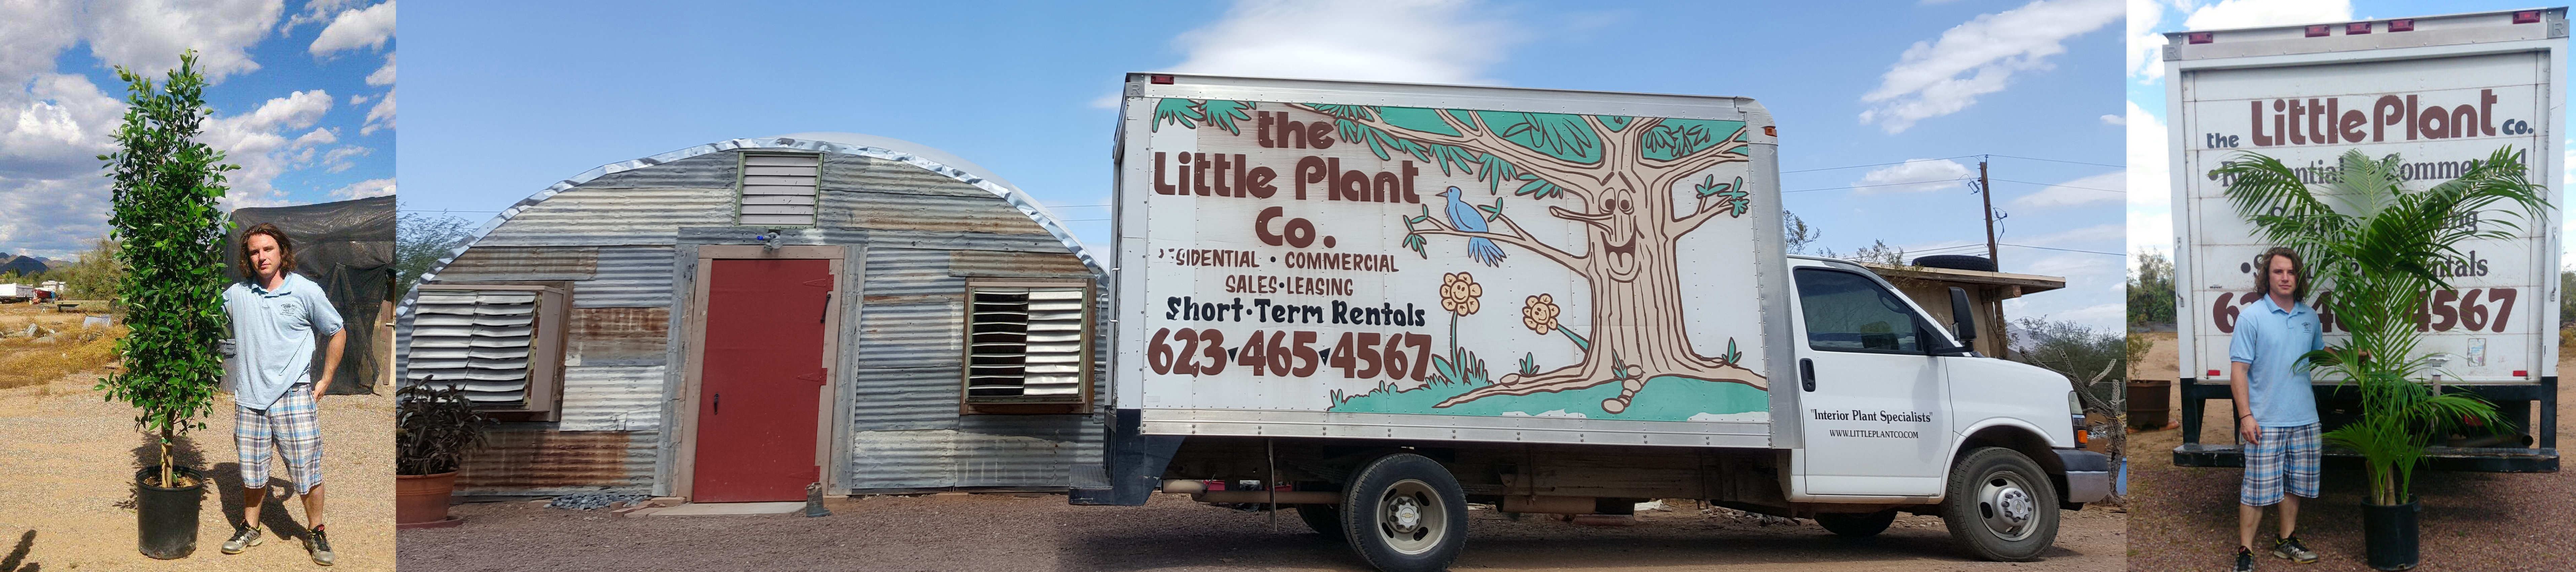 The Little Plant Company